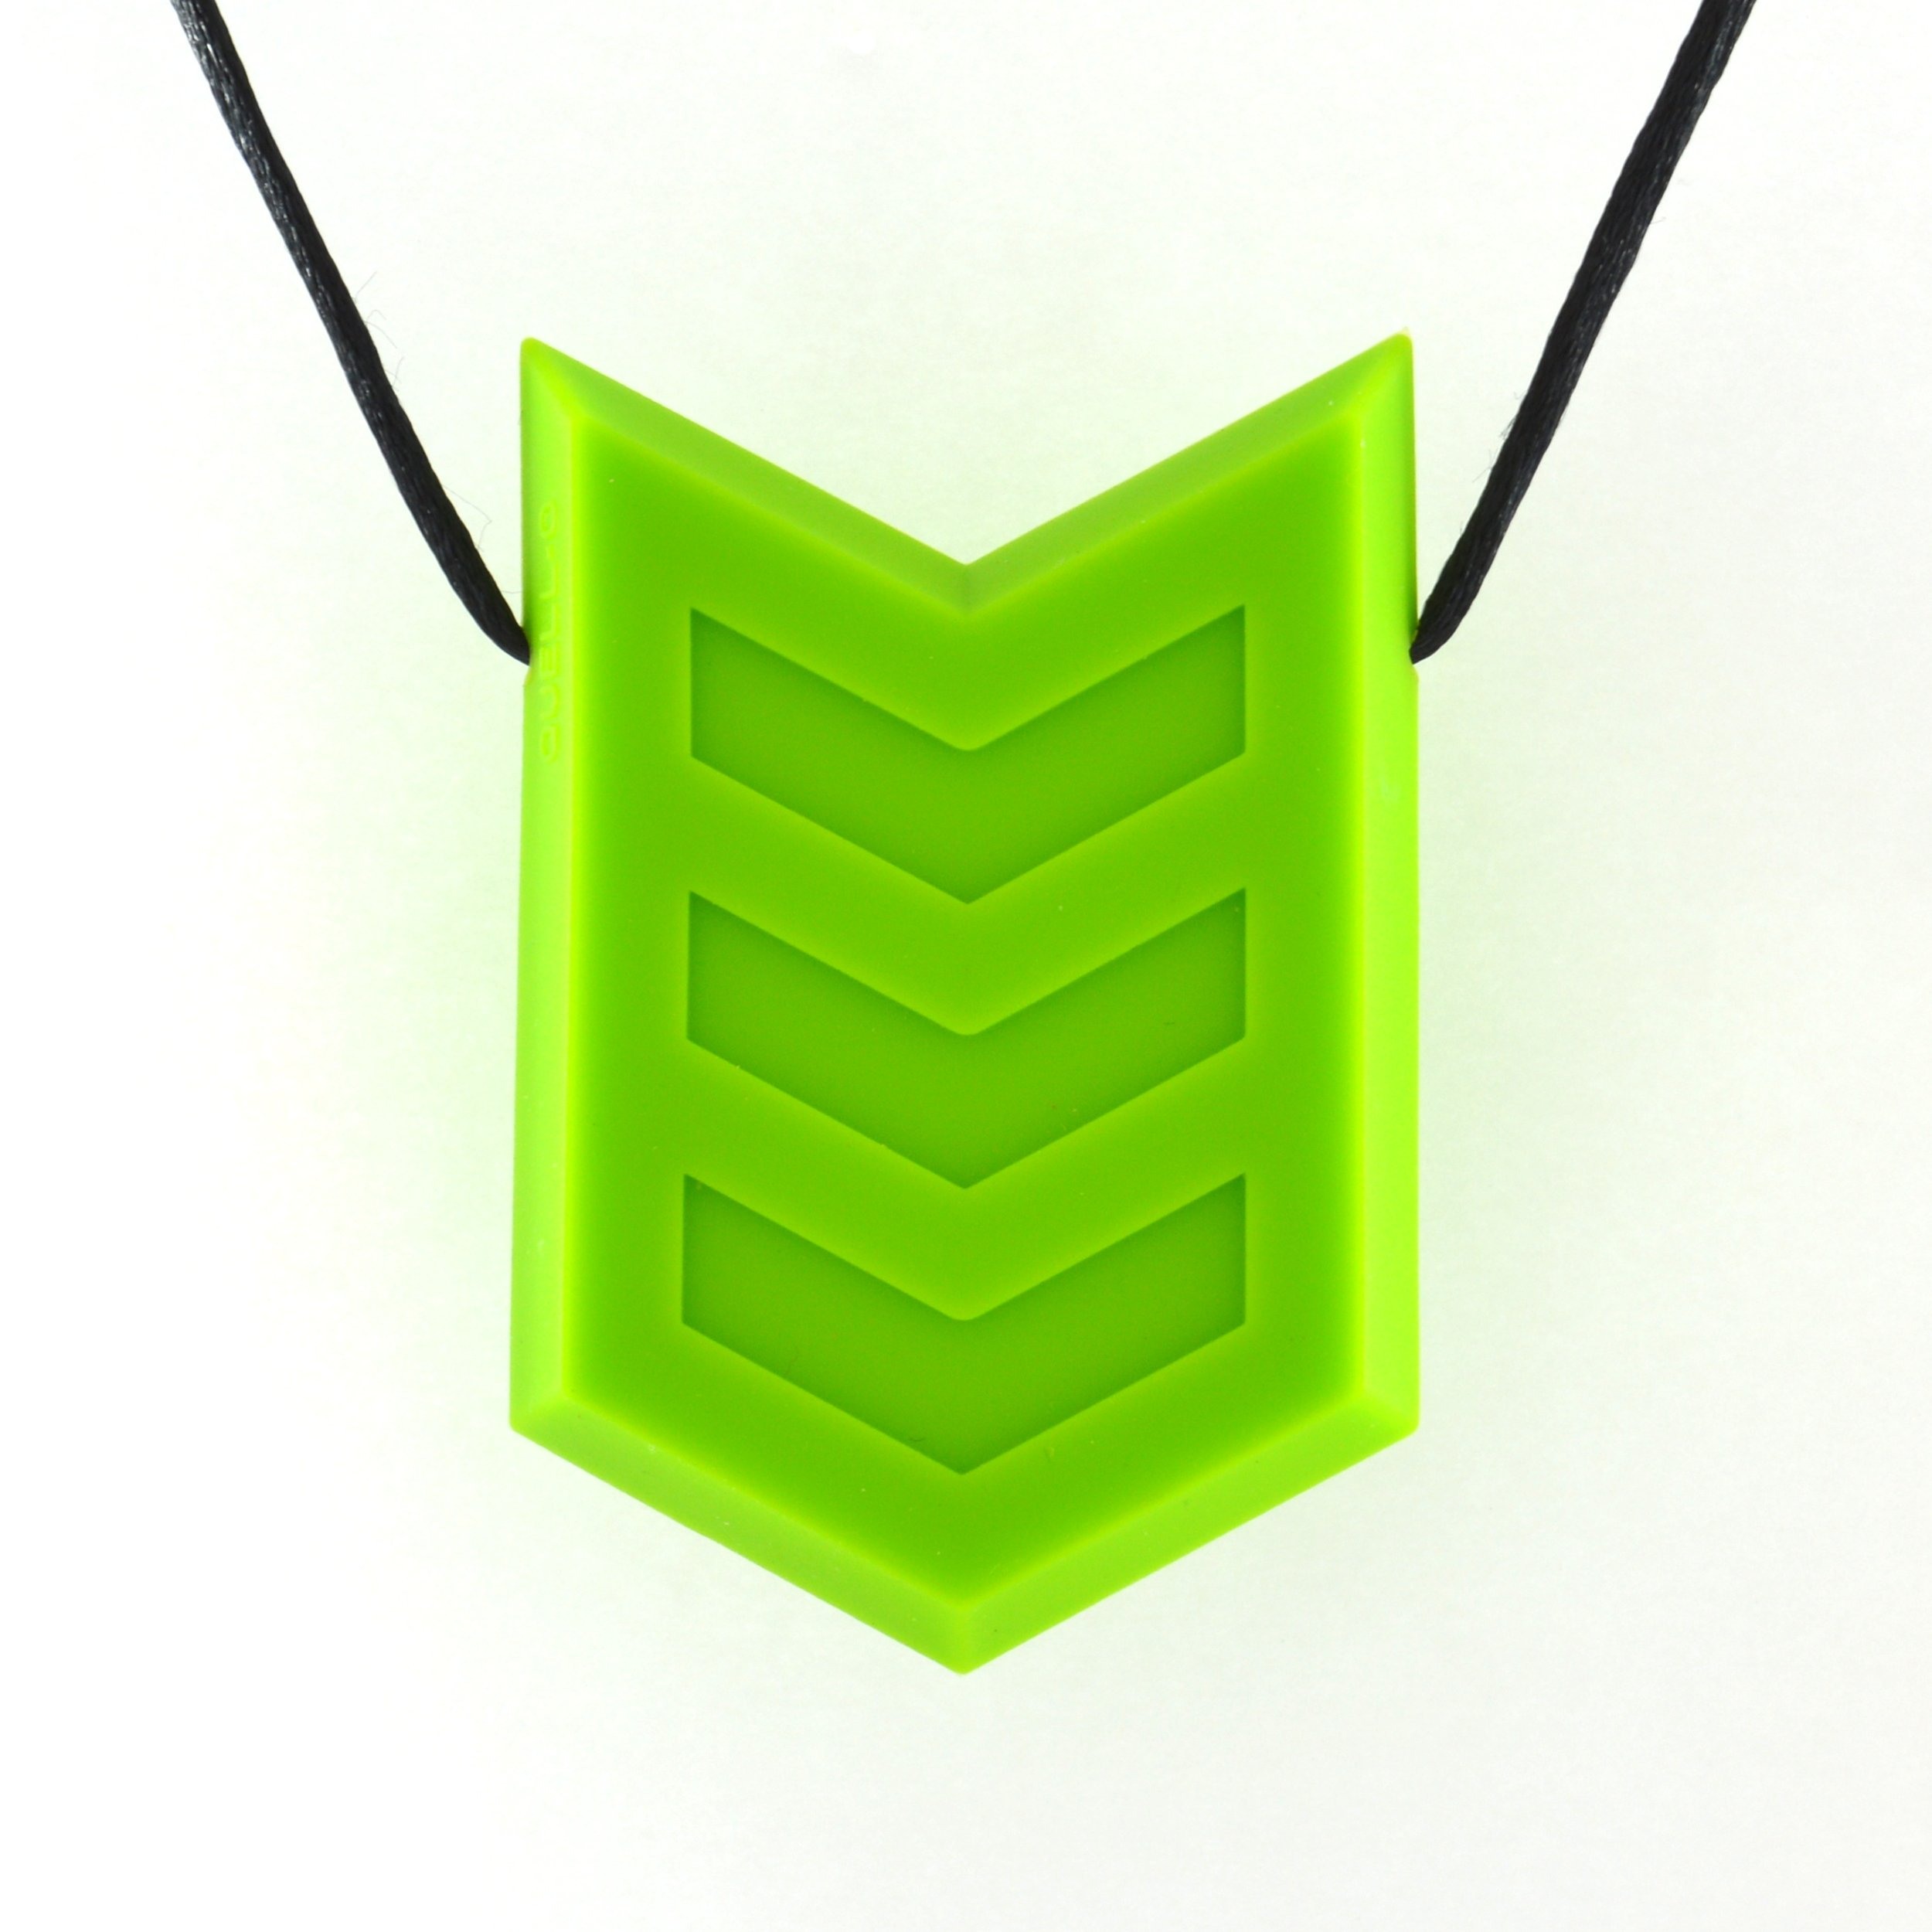 Quell-O Hero Crest Sensory Chewable Necklace - Tough Chewelry for Mild Chewers (Green))